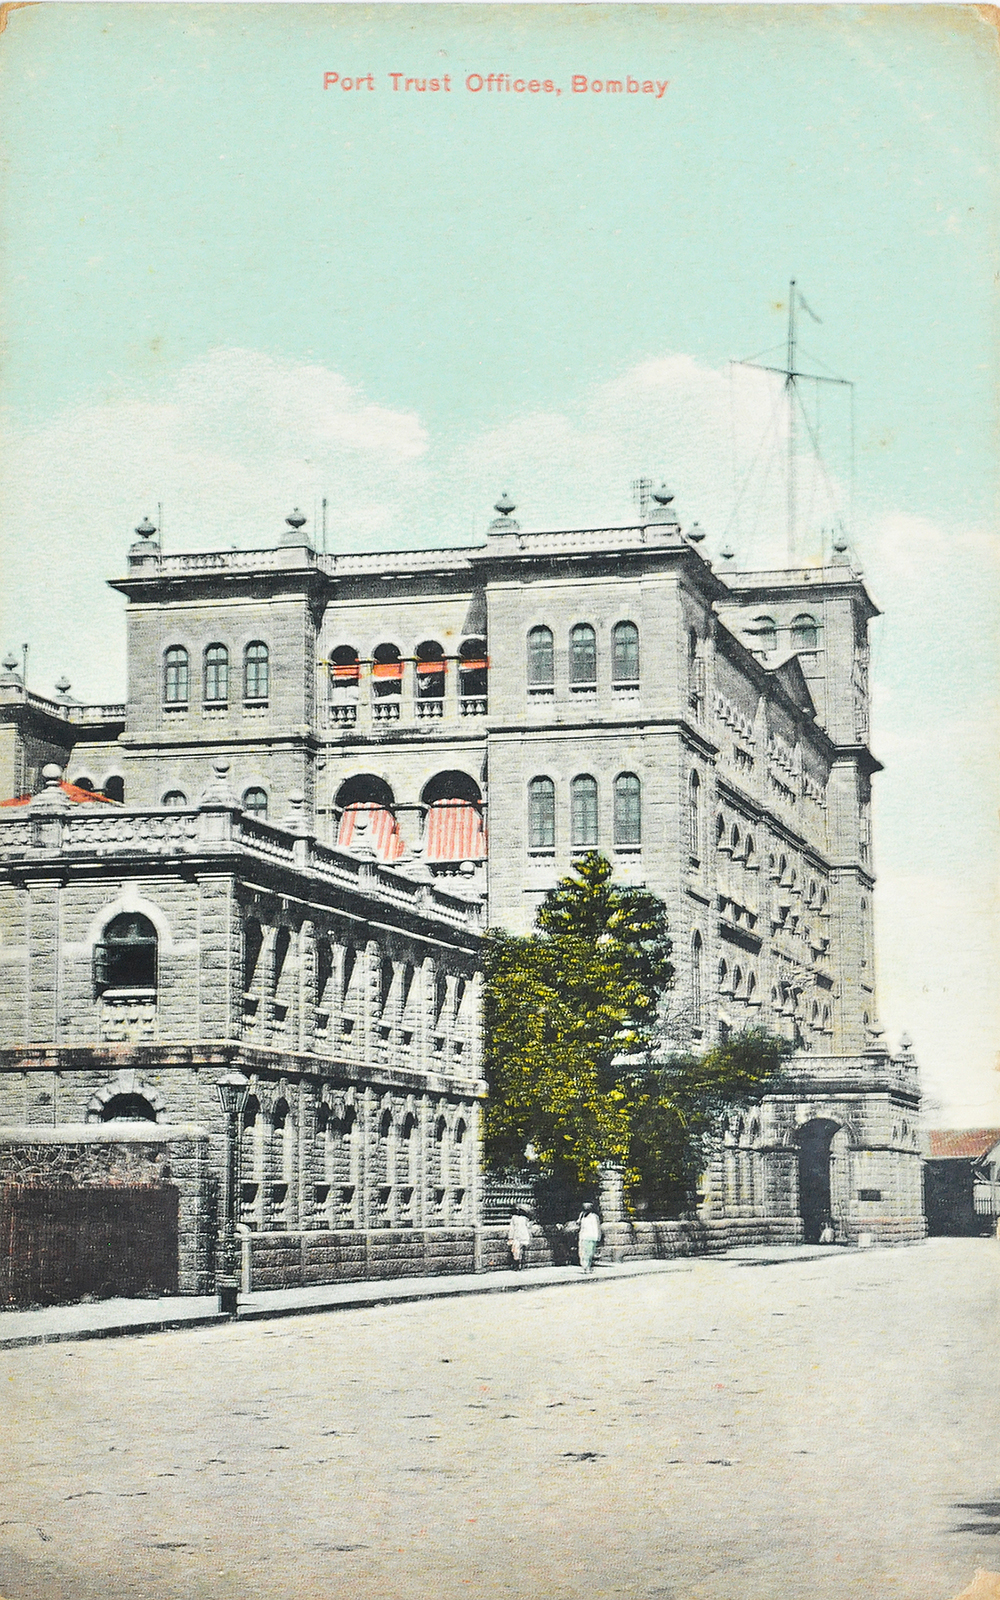 Port Trust Offices Bombay - Old Postcard 1905